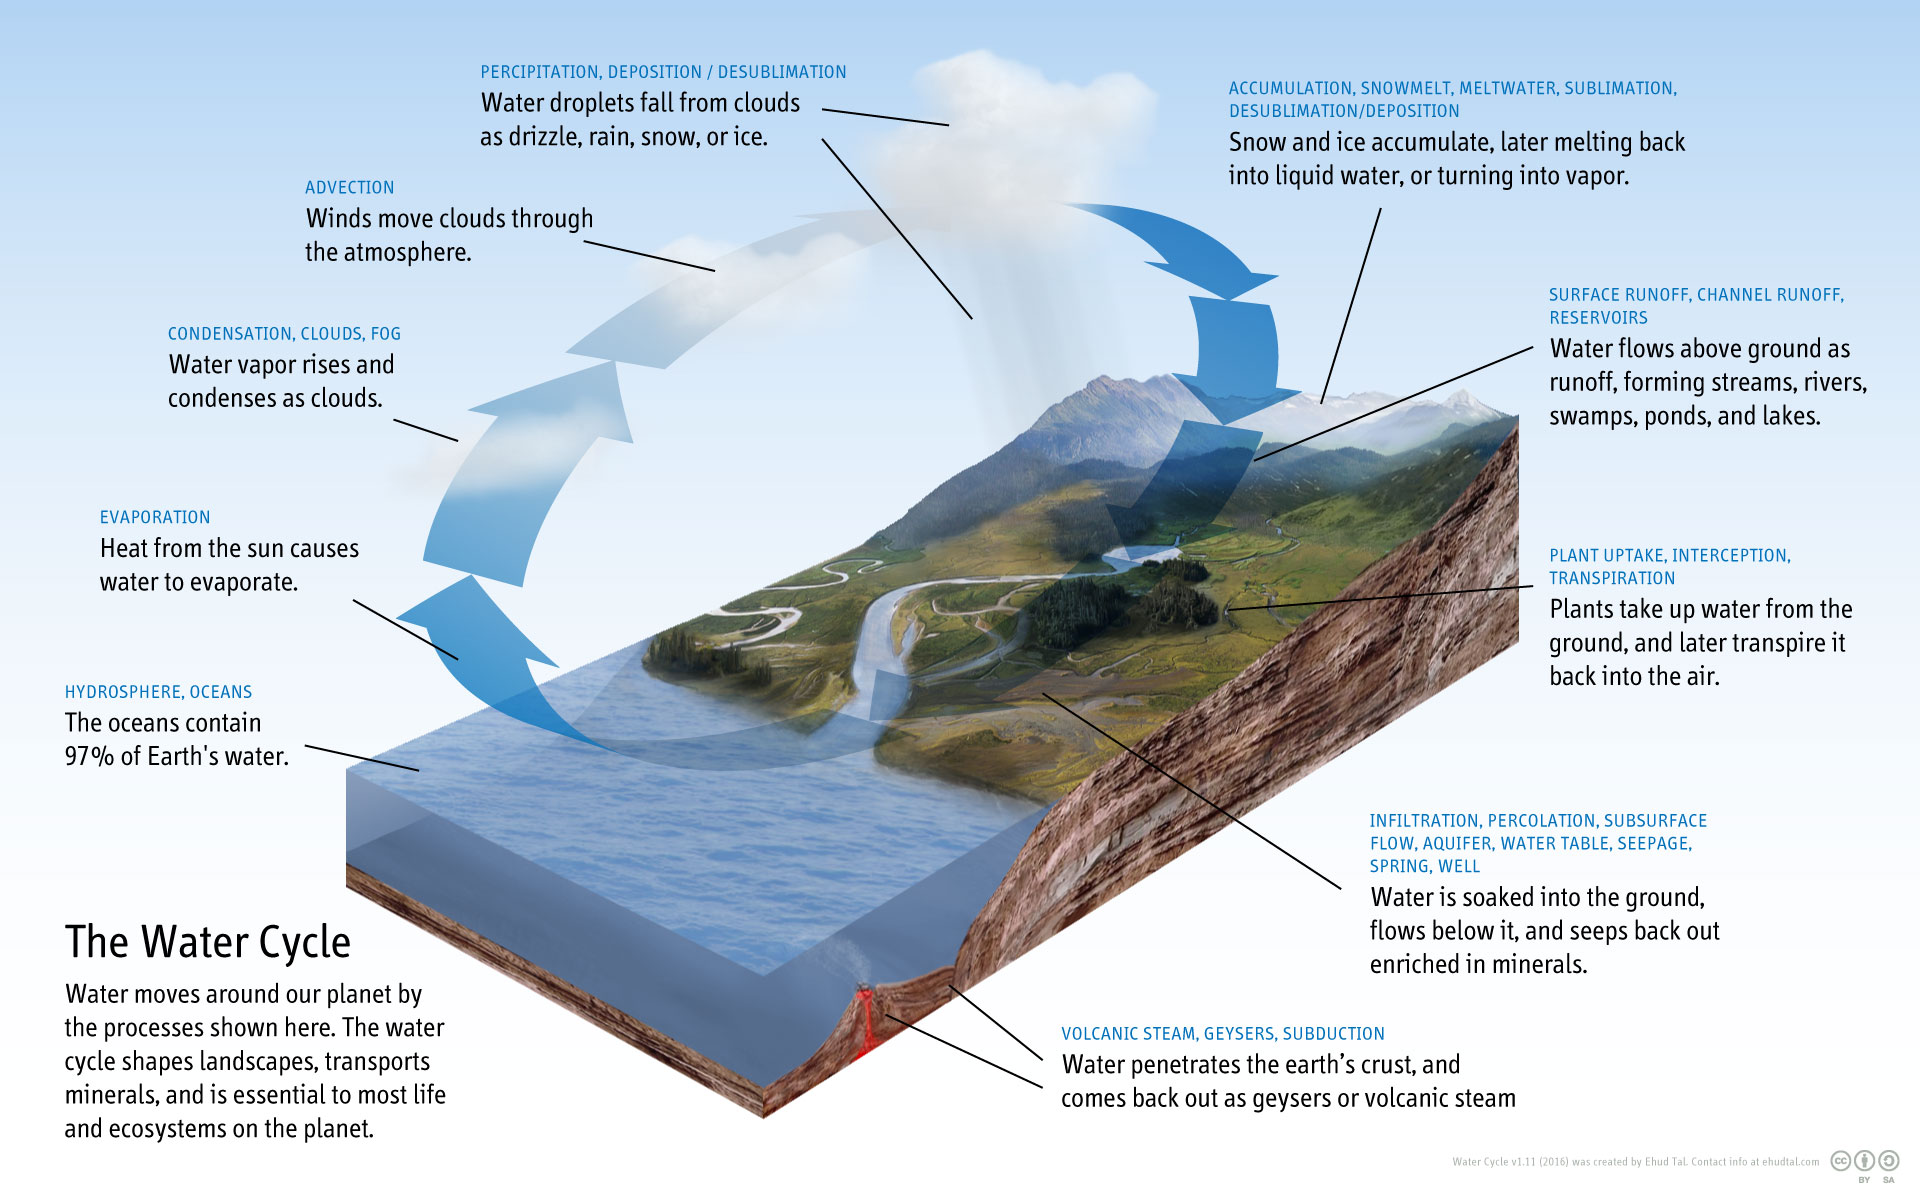 Typical textbook illustration of the Water Cycle